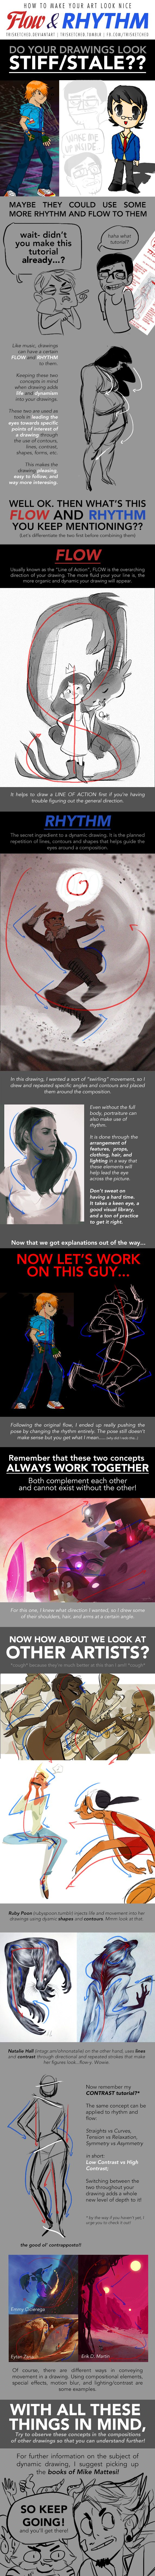 HOW TO MAKE YOUR ART LOOK NICE: Flow and Rhythm by trisketched.deviantart.com on @DeviantArt